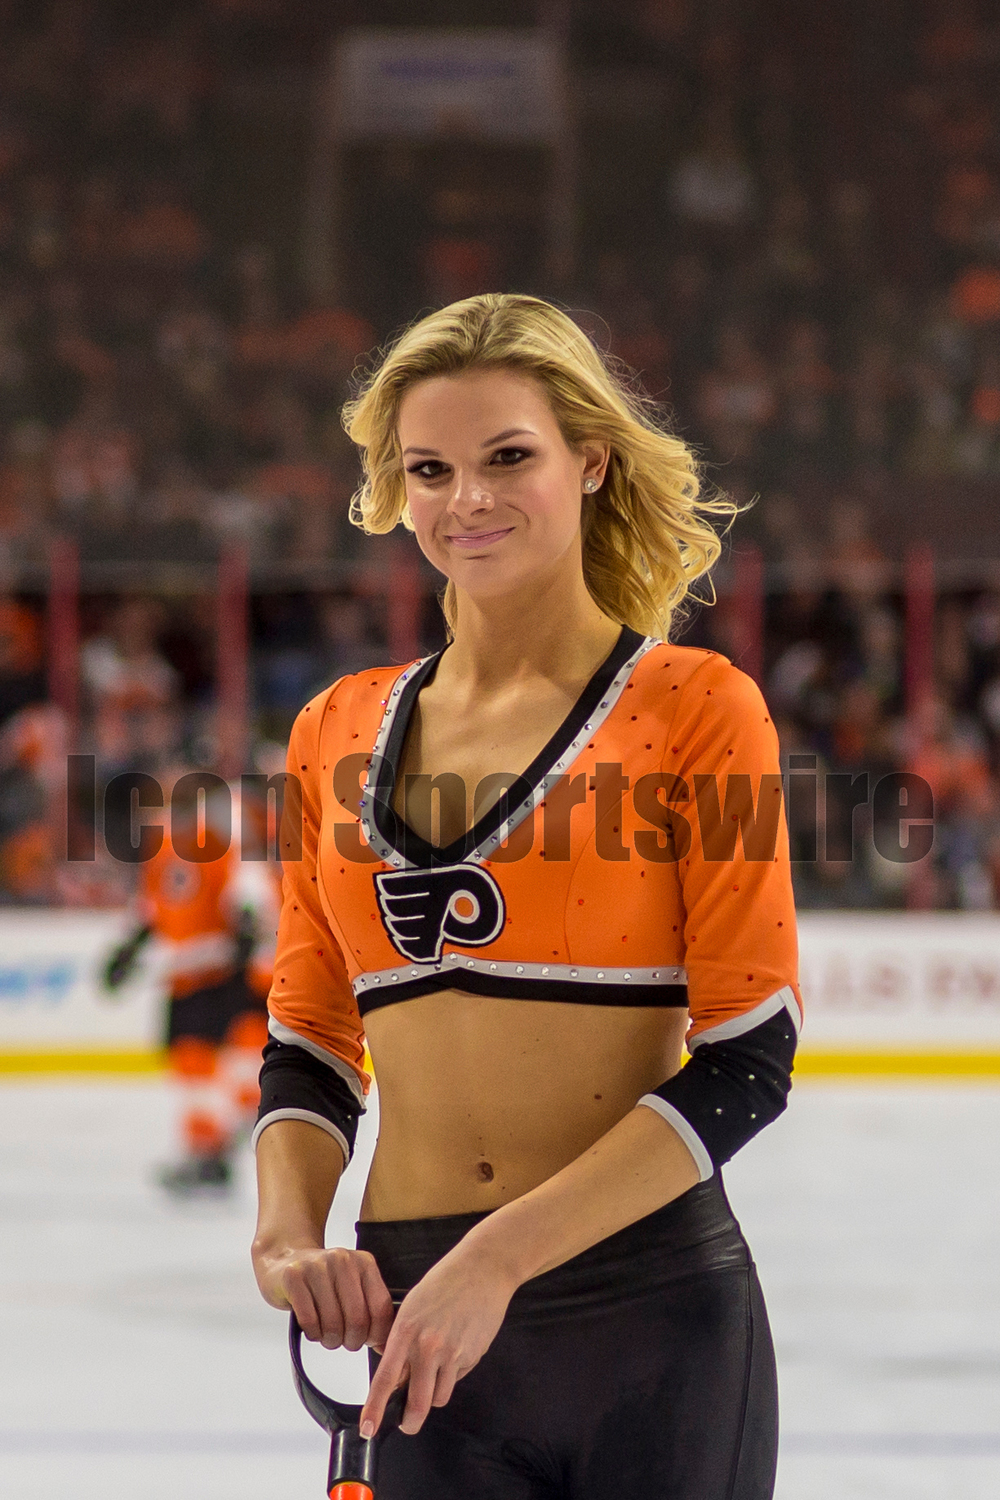 27 Jan 2015: A Philadelphia Flyer's ice girl  during the NHL game between the Arizona Coyotes and the Philadelphia Flyers played at the Wells Fargo Center in Philadelphia, PA